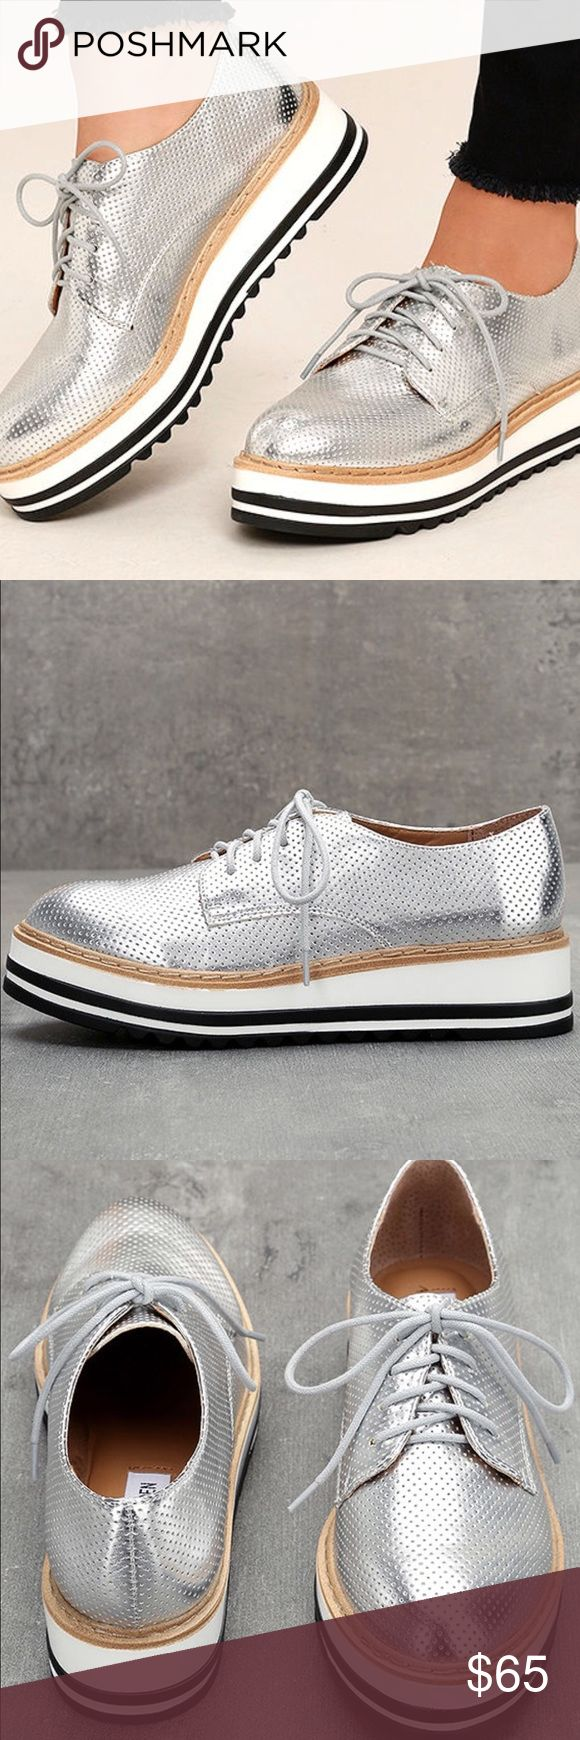 Steve Madden Vassar Silver Platform Sneakers Cushioned insole rubber sawtooth sole and the most amazing on trend shoes! Worn once for indoor photo shoot Steve Madden  Shoes Sneakers